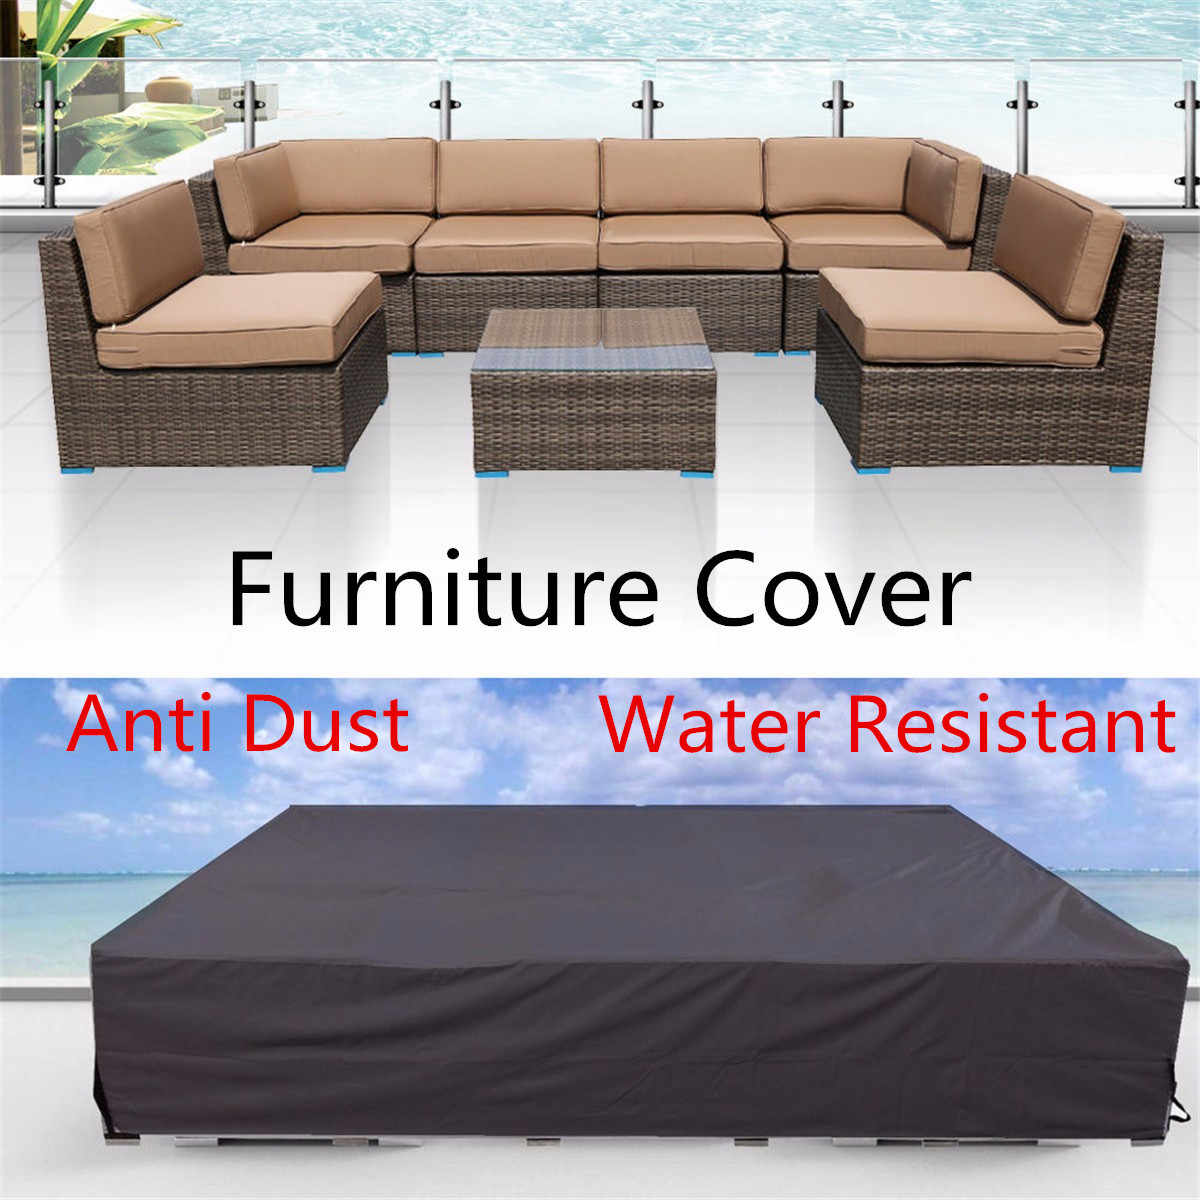 Waterproof 210T Furniture Cover For Garden Rattan Table Cube Chair Sofa All-Purpose Dust Proof Outdoor Patio Protective Case